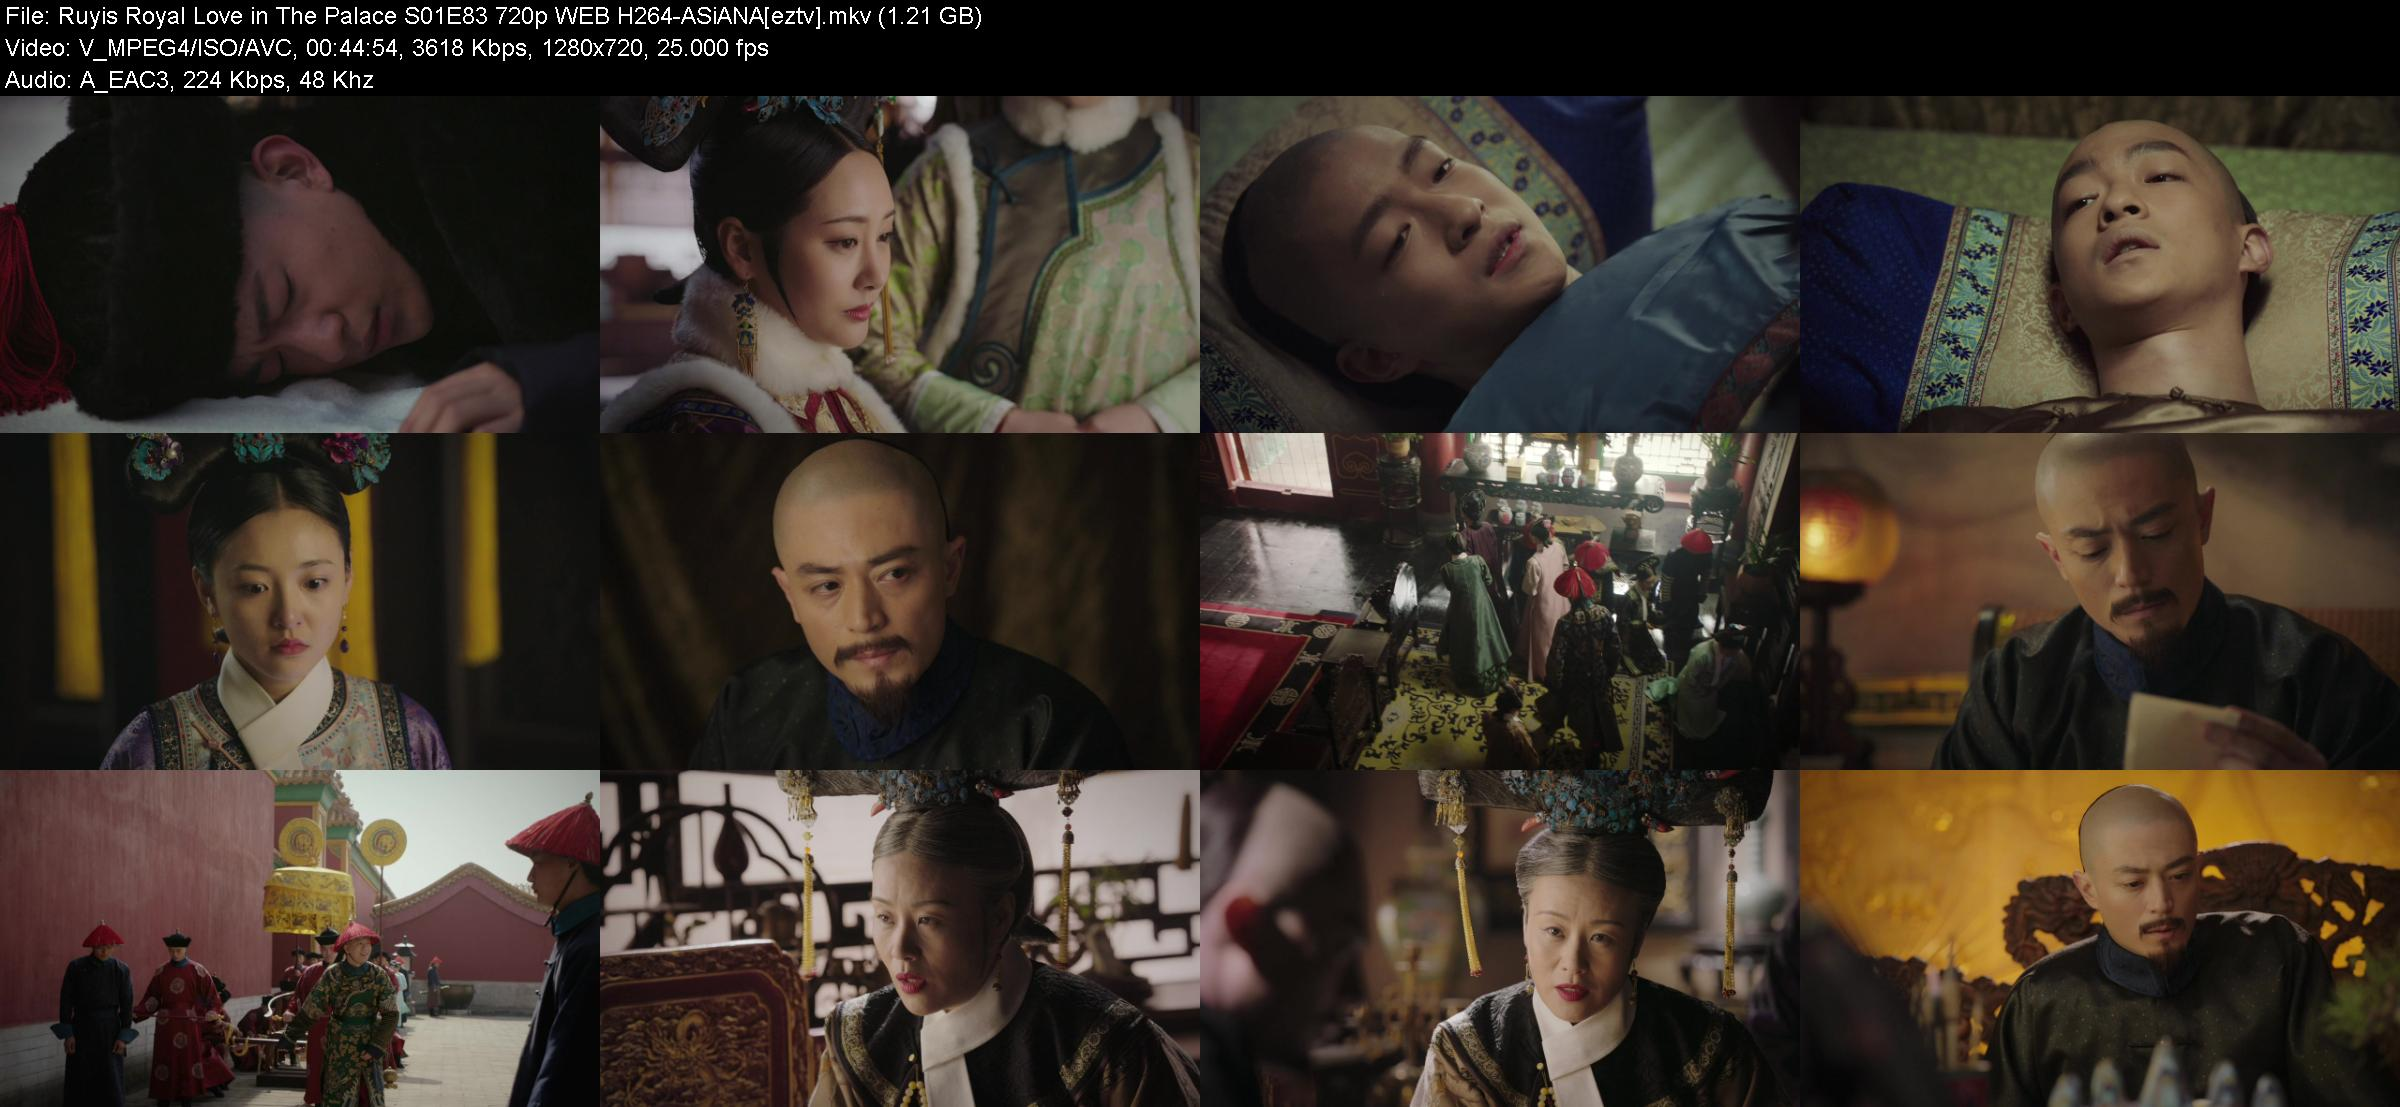 Ruyis Royal Love in The Palace S01E83 720p WEB H264-ASiANA